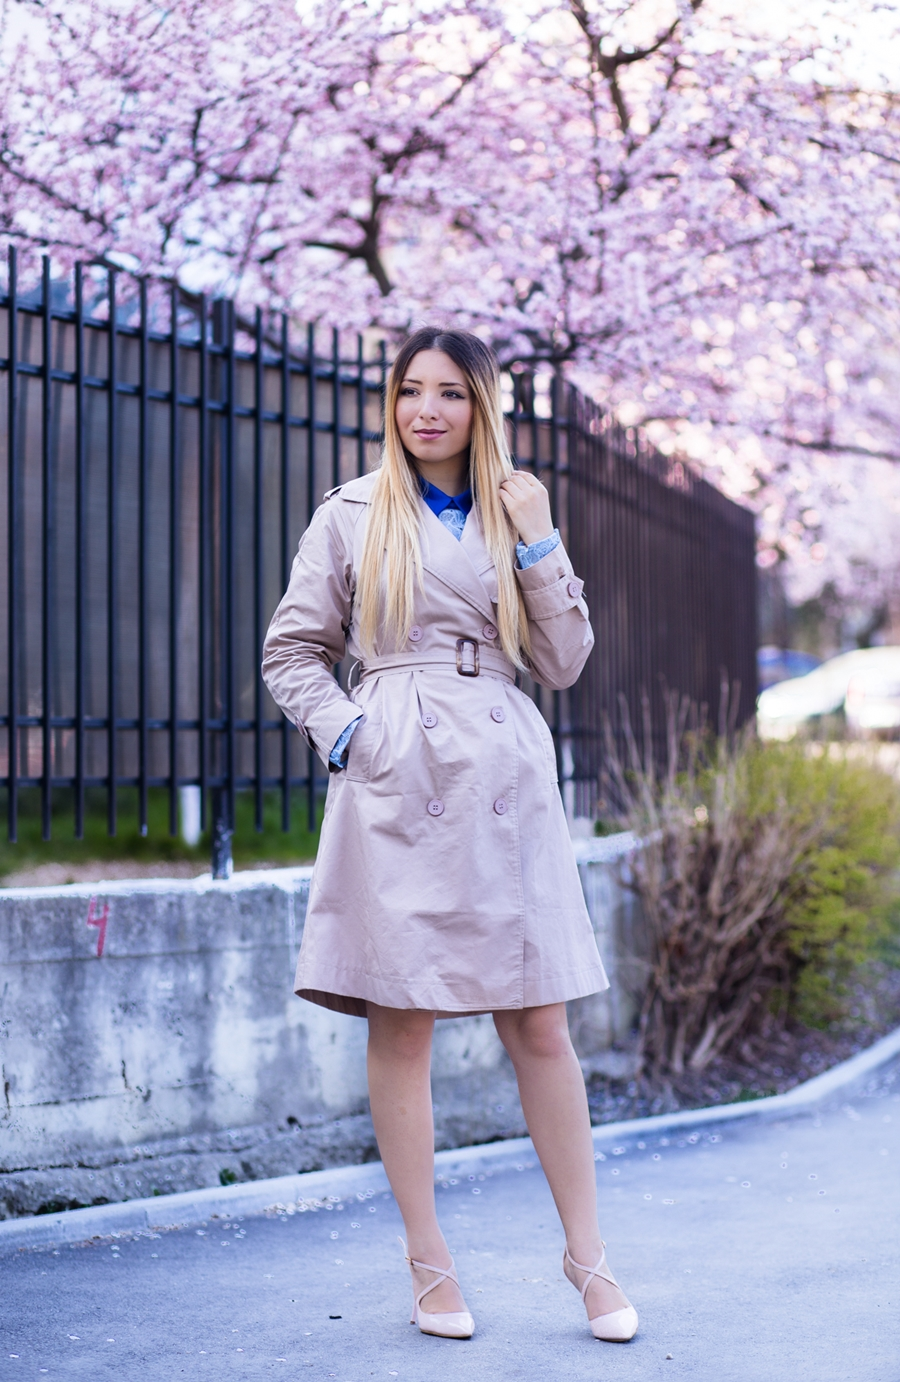 Street style: classic nude trench coat, nude shoes, spring look, blossoming trees